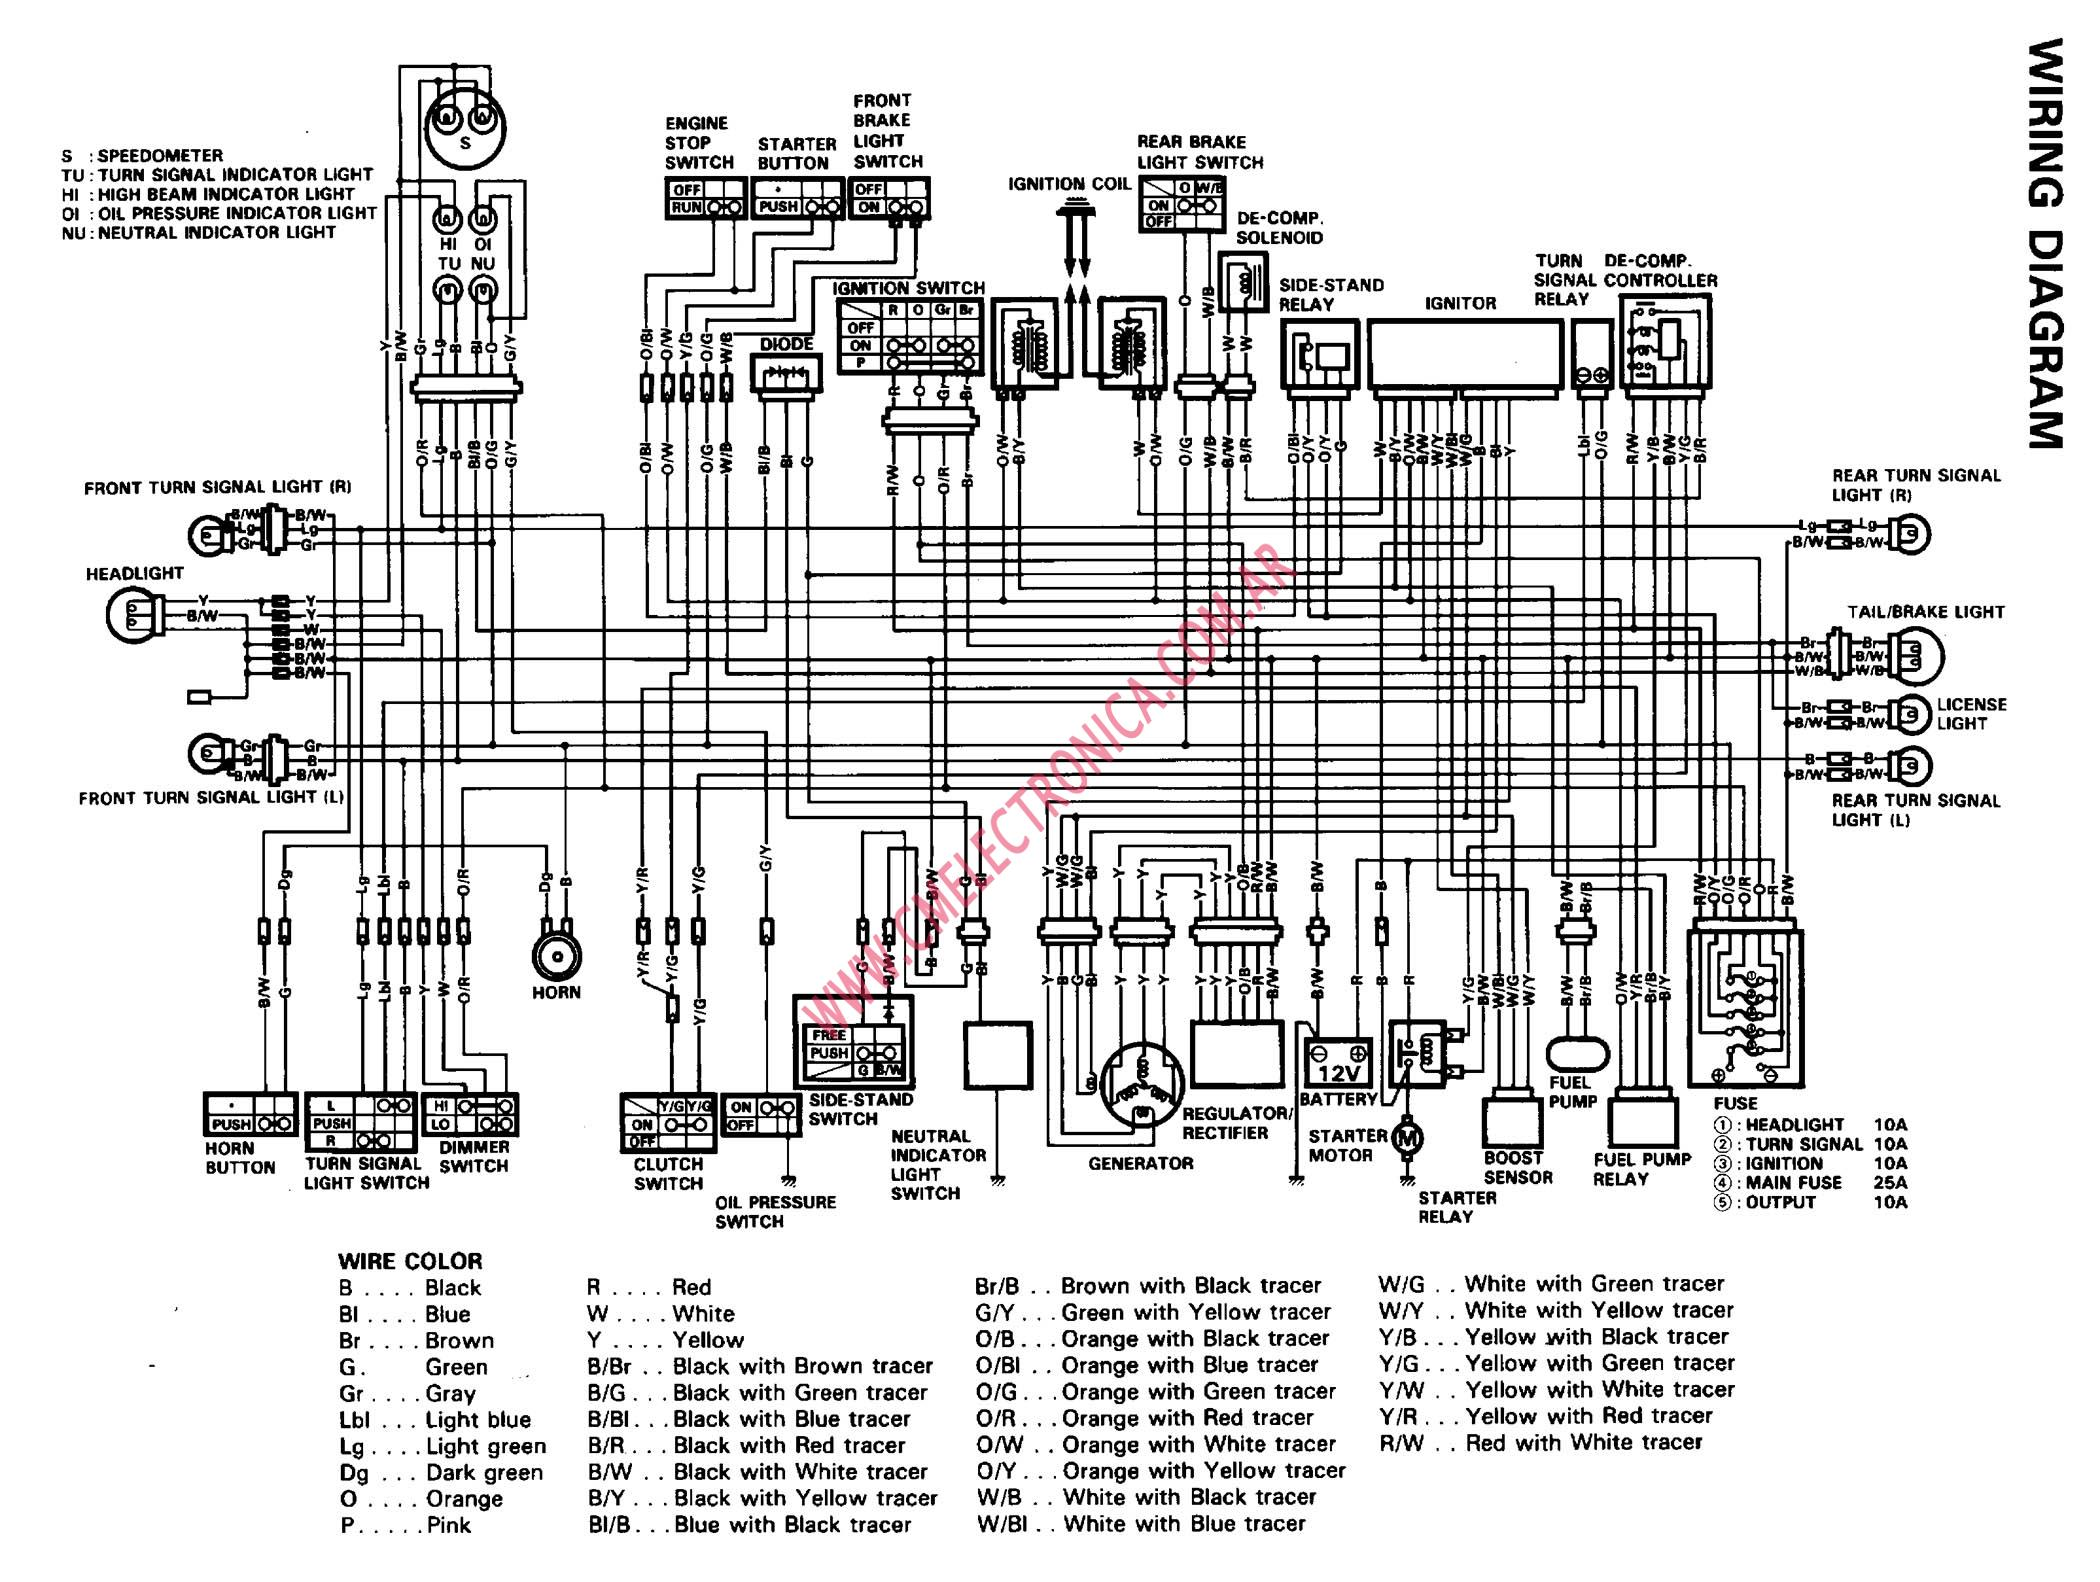 1998 kawasaki bayou 220 wiring diagram wiring diagram arctic cat 400 engine diagram